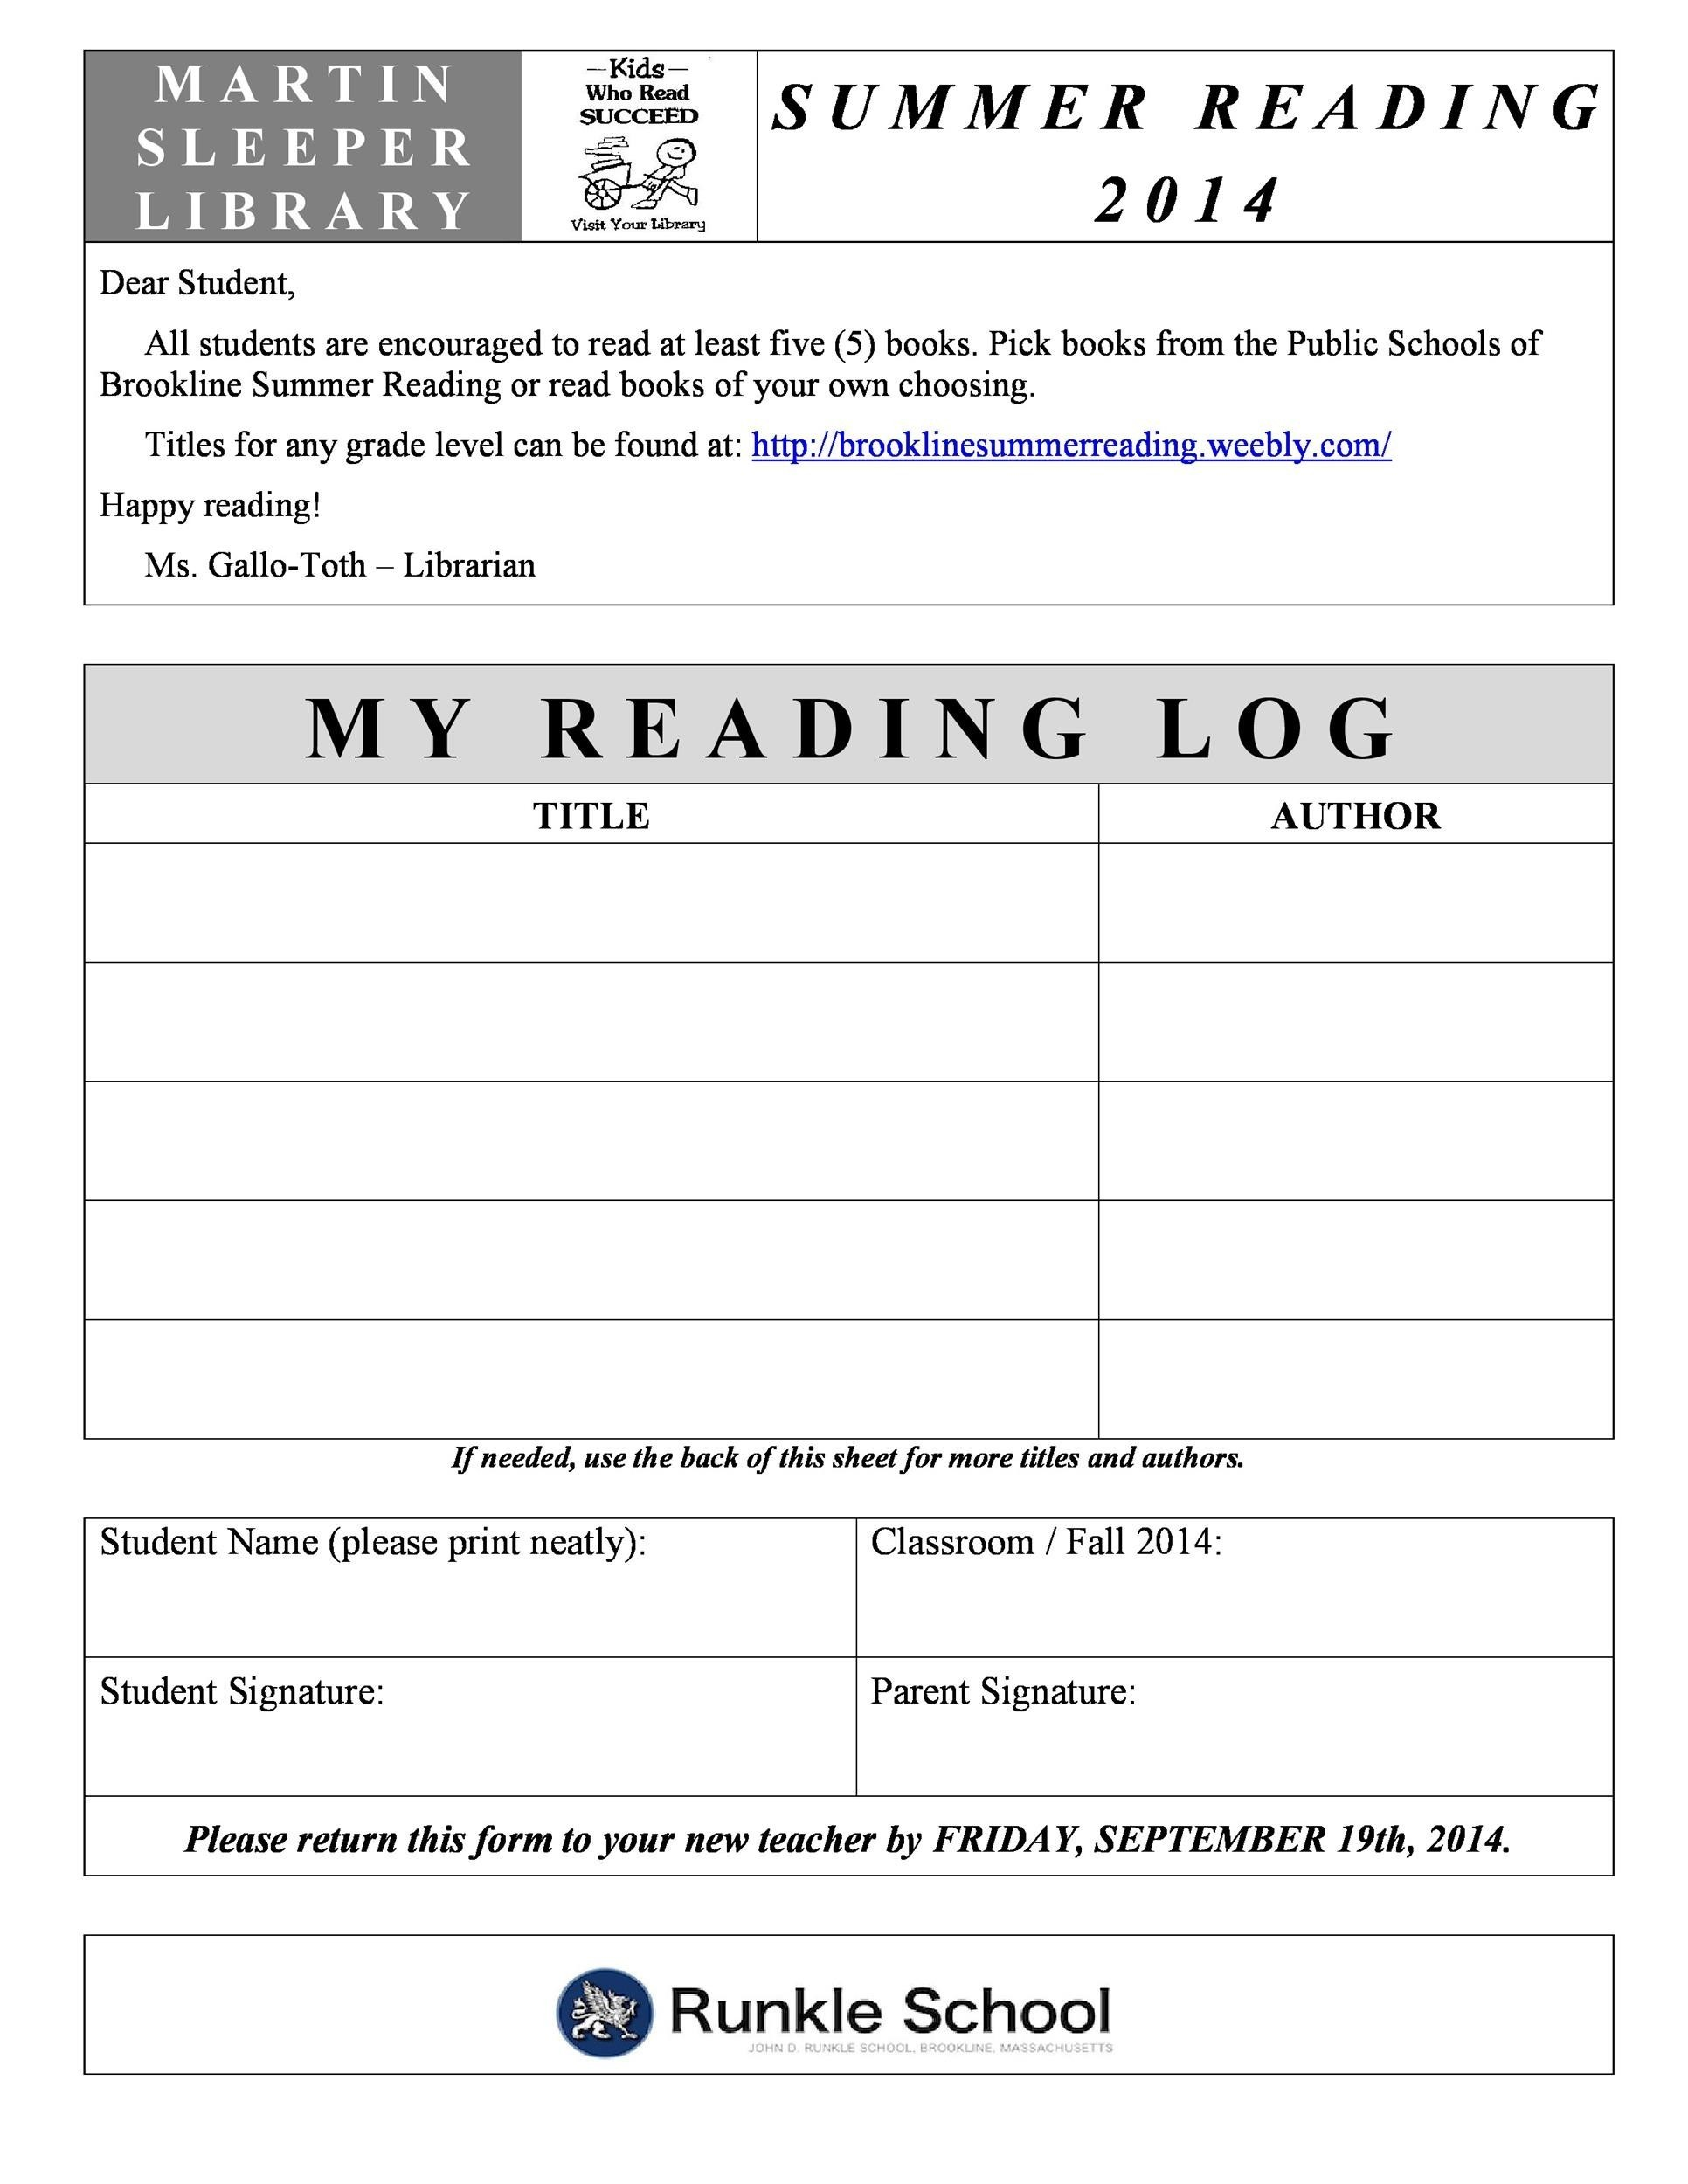 photo regarding Printable Reading Logs With Parent Signature known as 47 Printable Looking at Log Templates for Little ones, Centre College or university